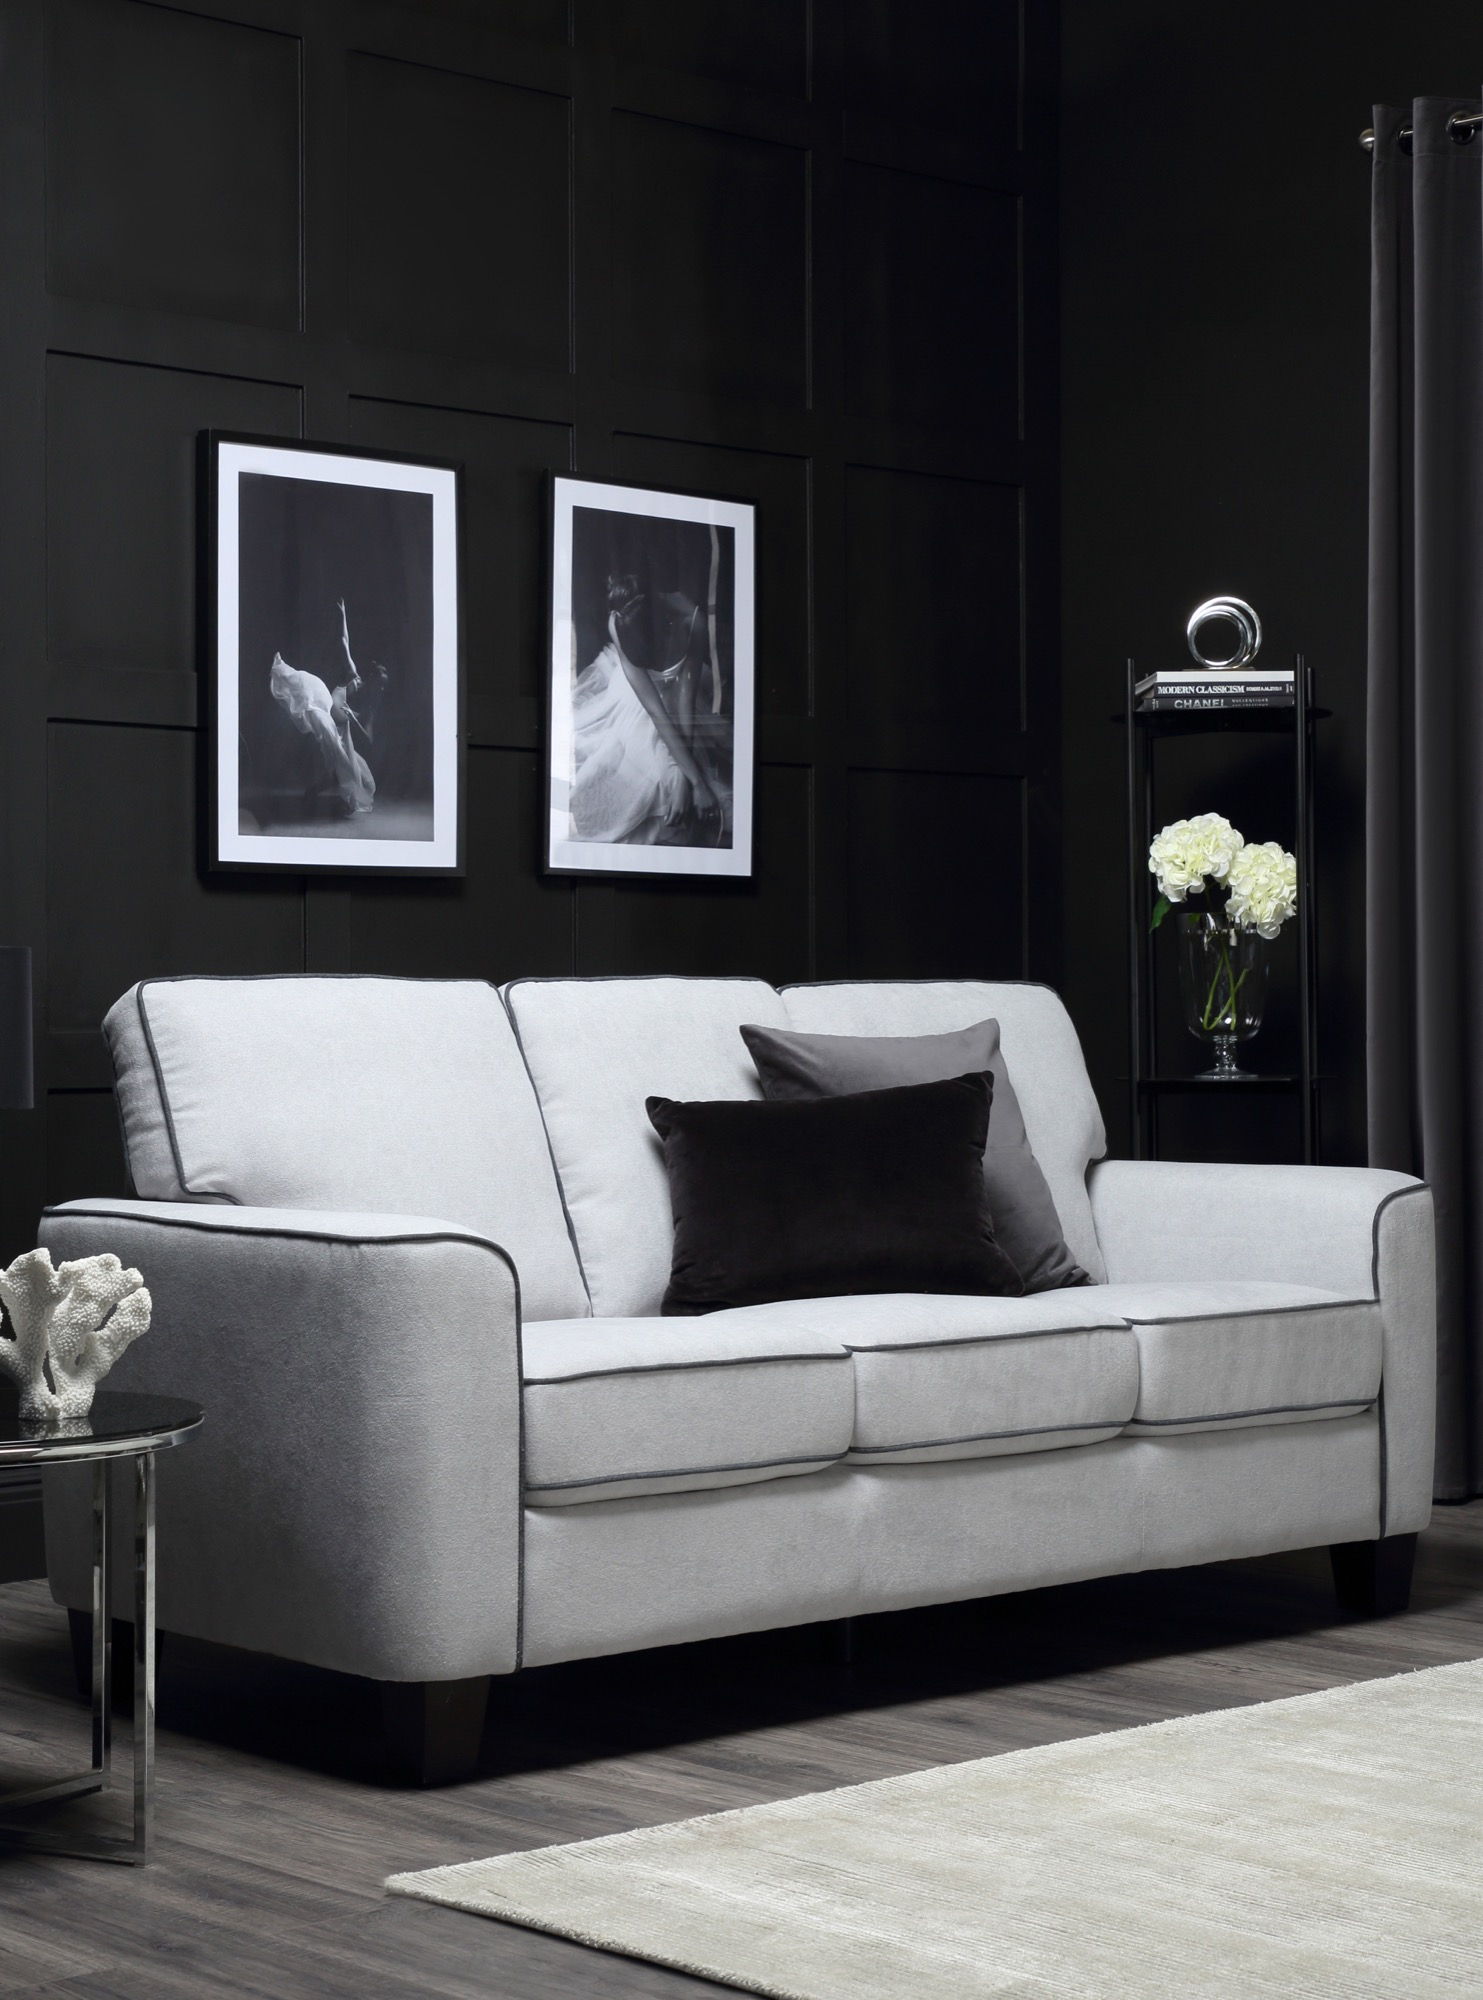 Top 5 Sofa Trends for 2019.jpg